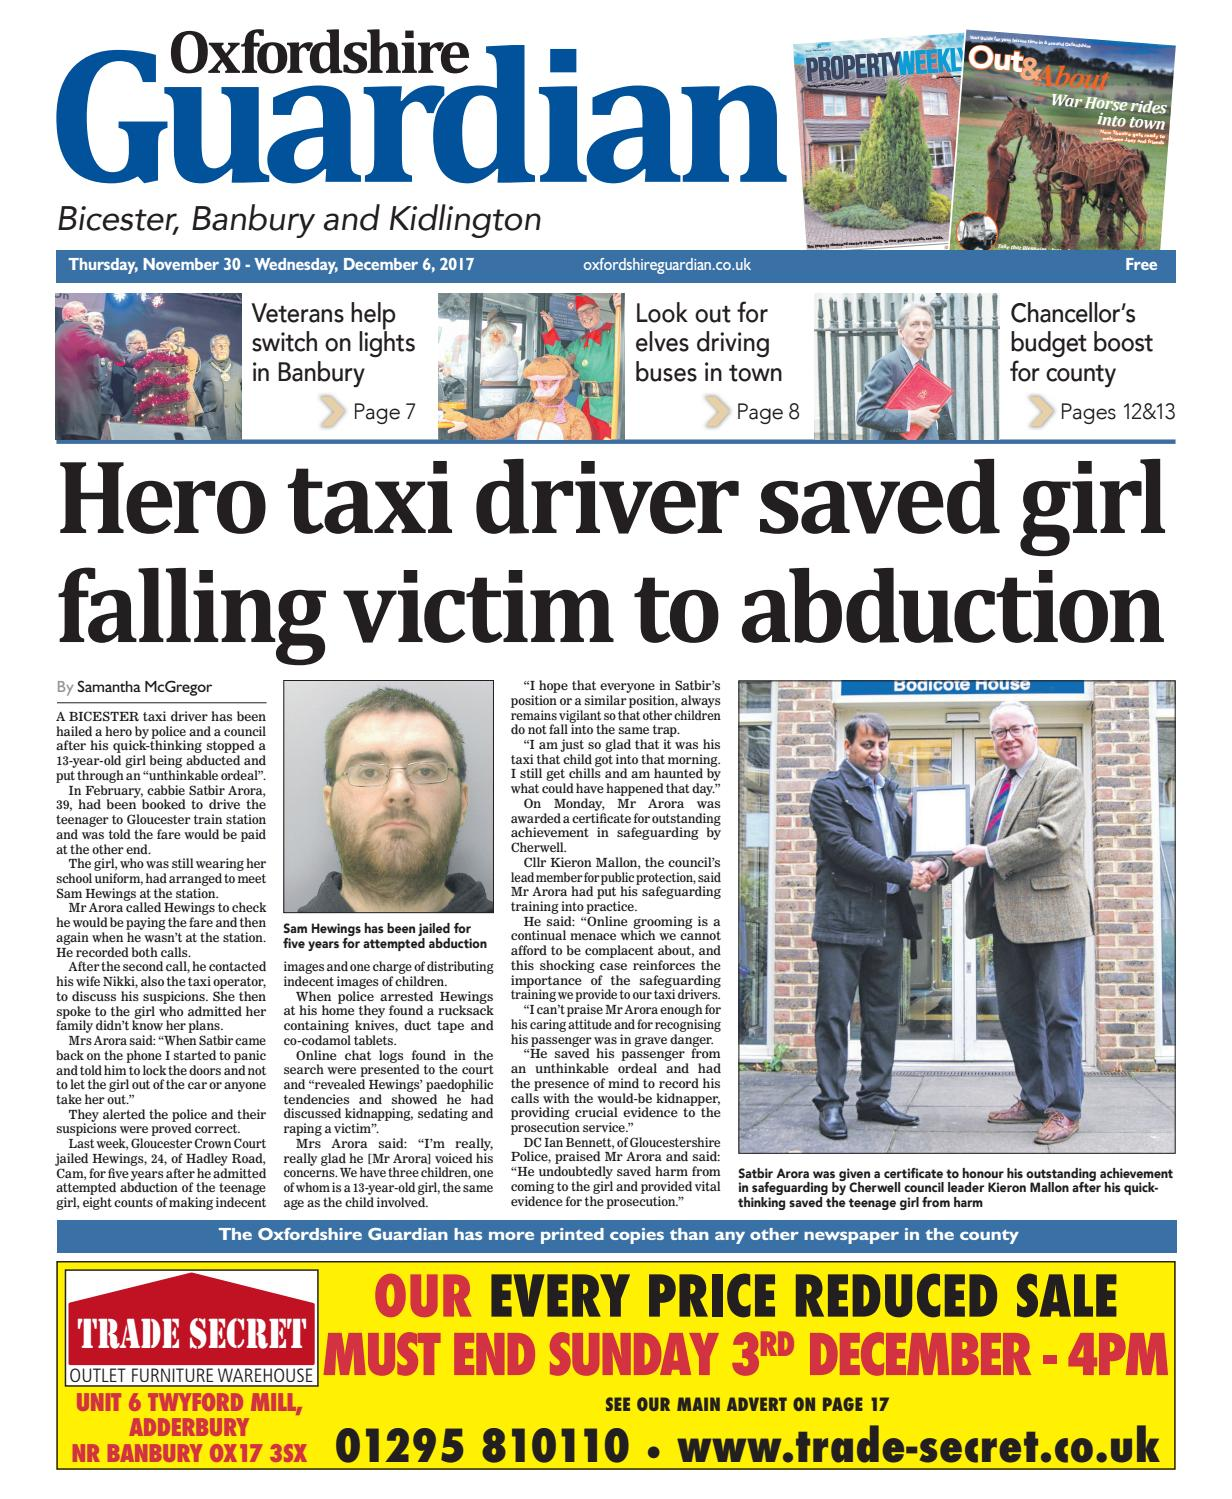 00cc3d5142abdb 30 november 2017 oxfordshire guardian bicester by Taylor Newspapers - issuu